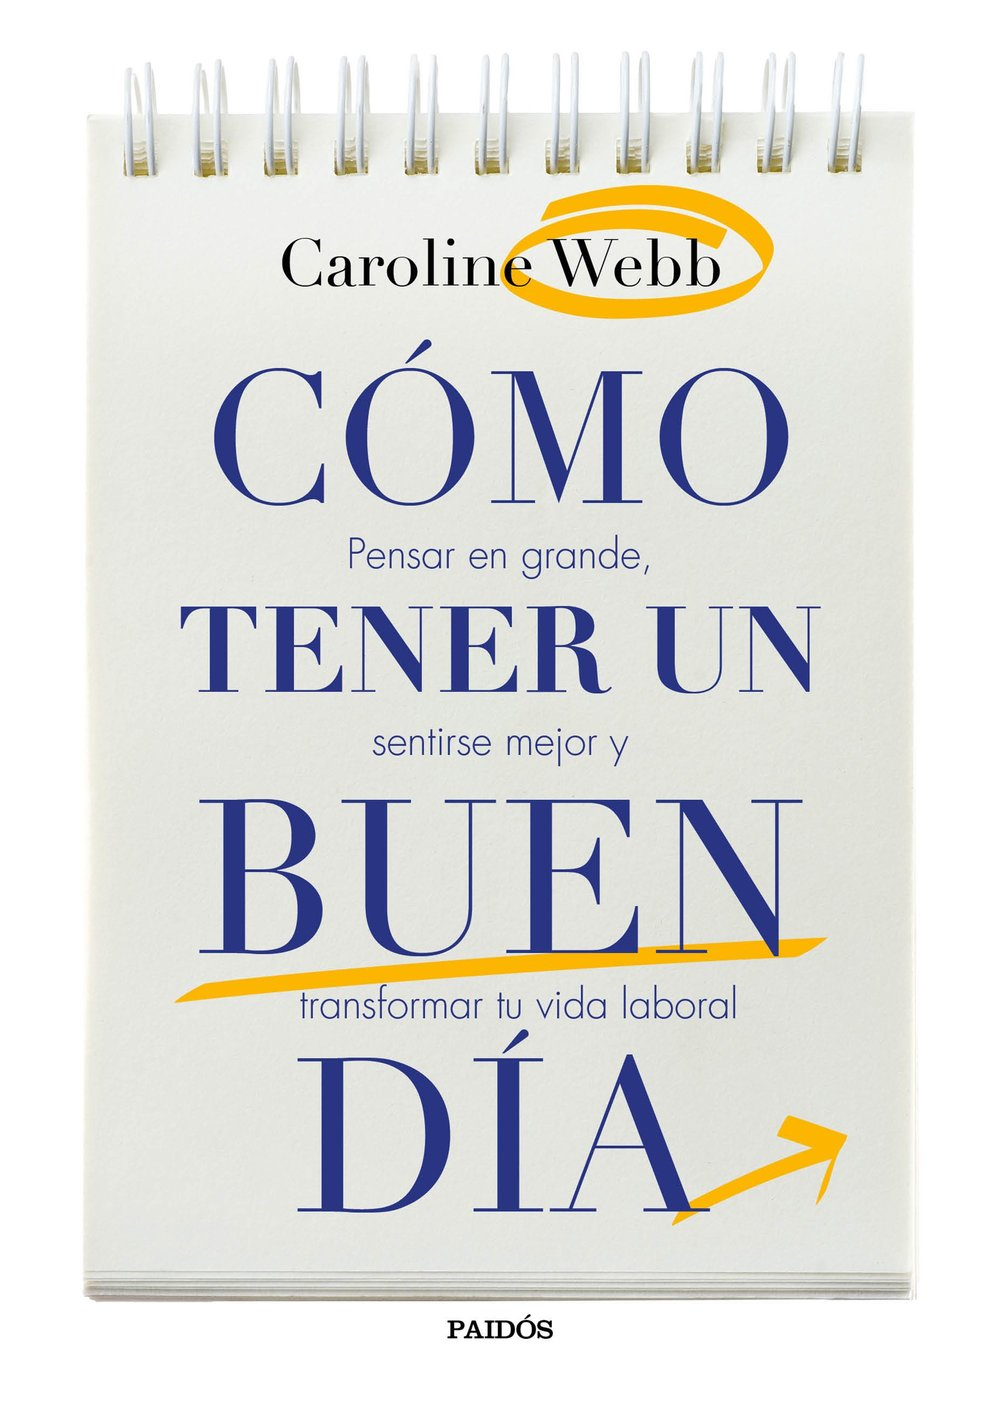 Spanish edition book image